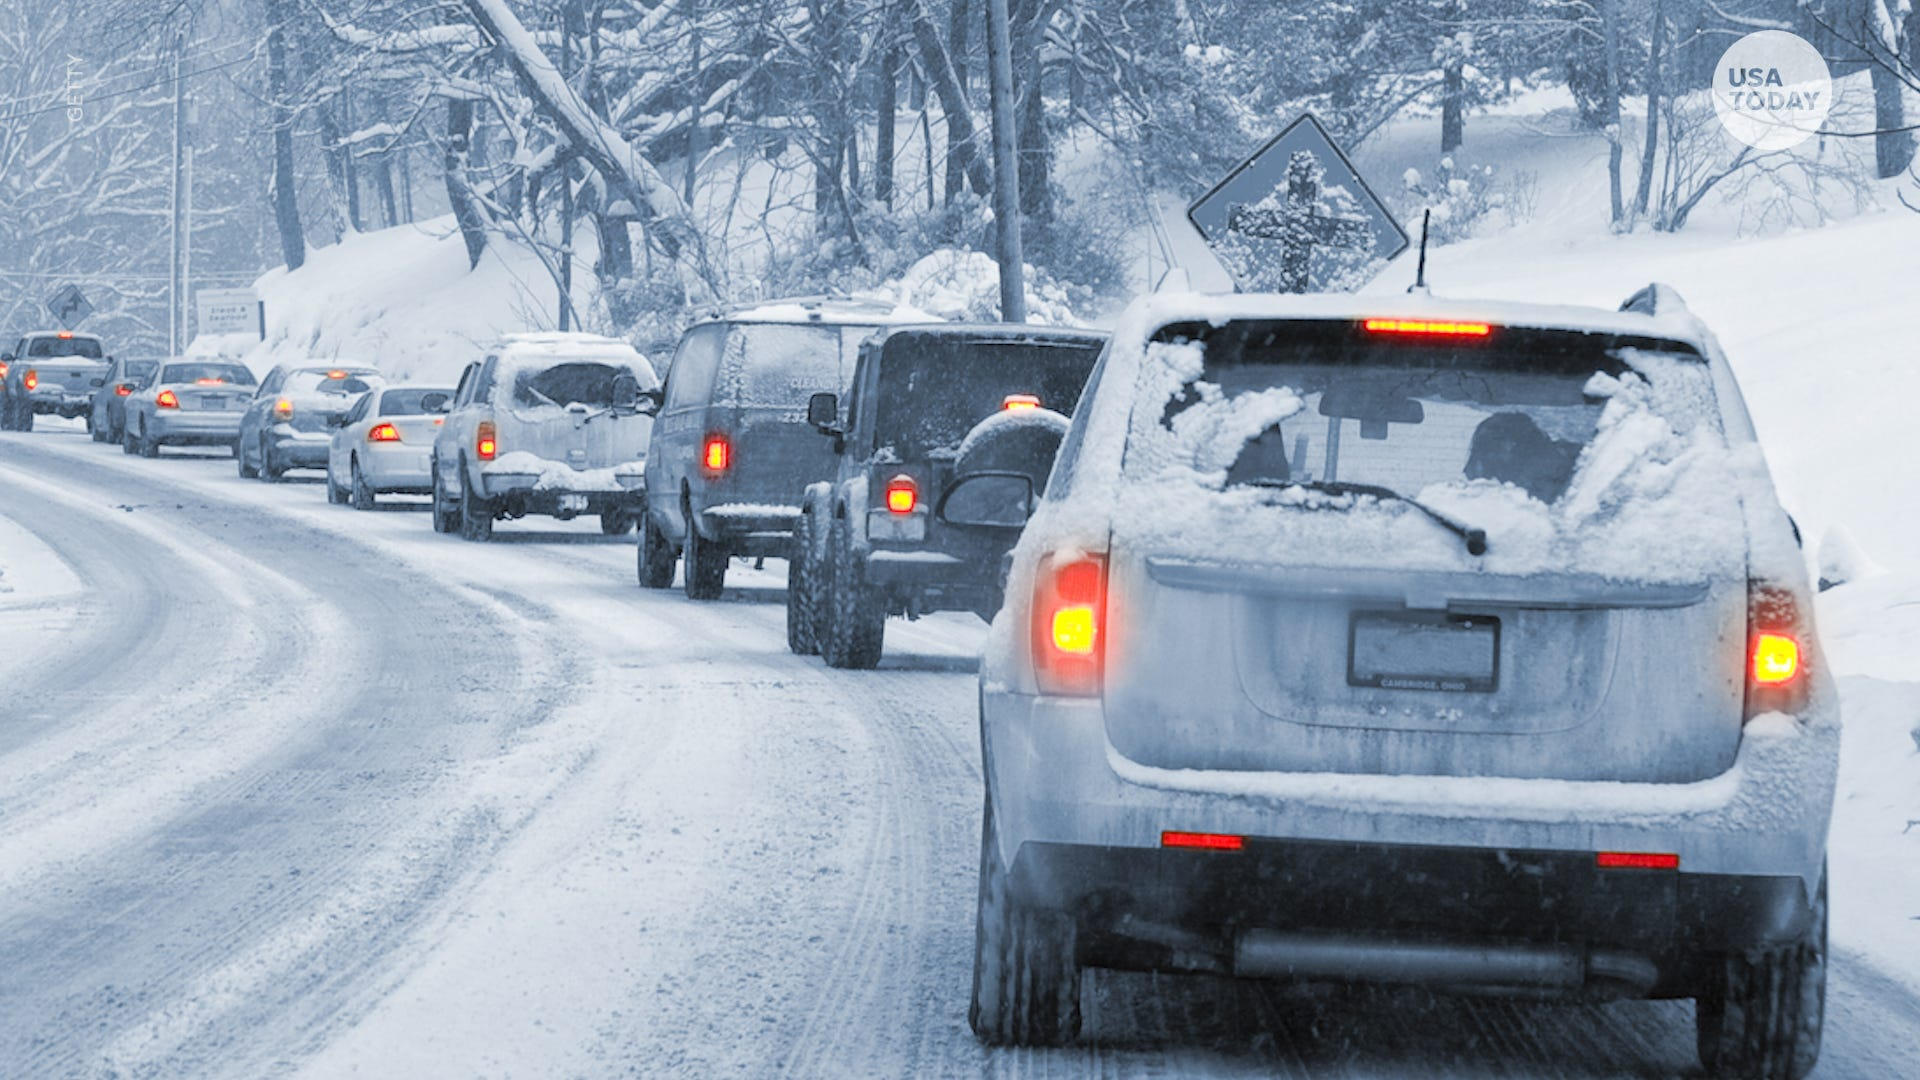 In cold weather, how often should I start my car?